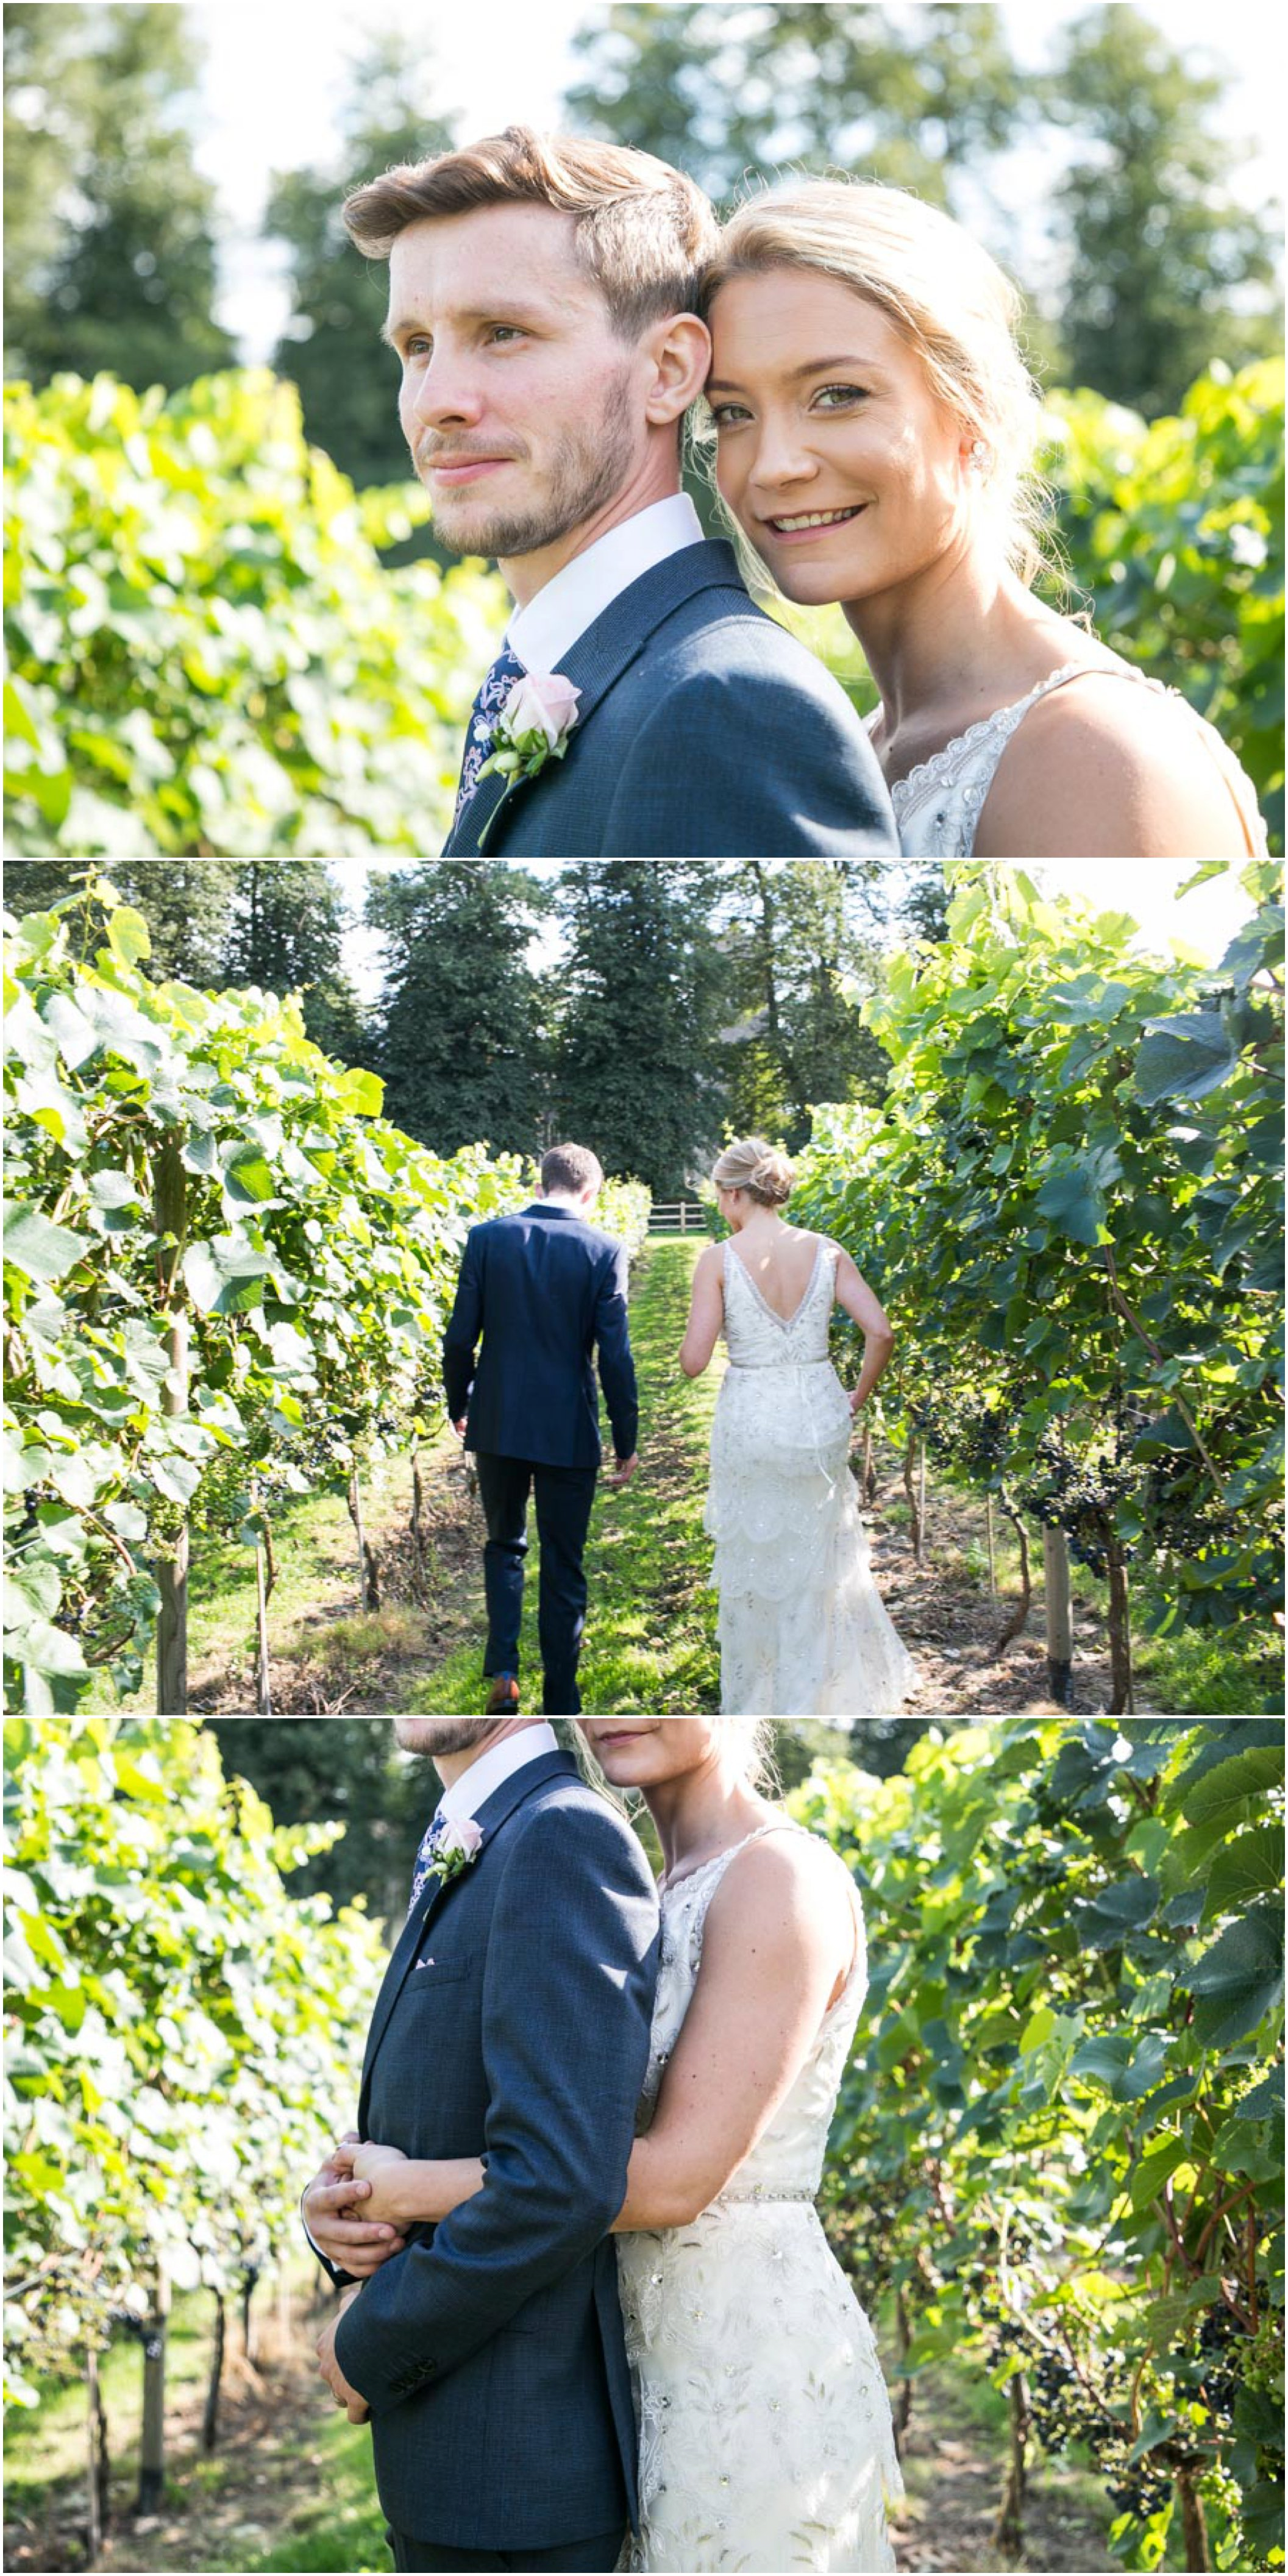 bride and groom portrait photos as they stand and walk in vineyards